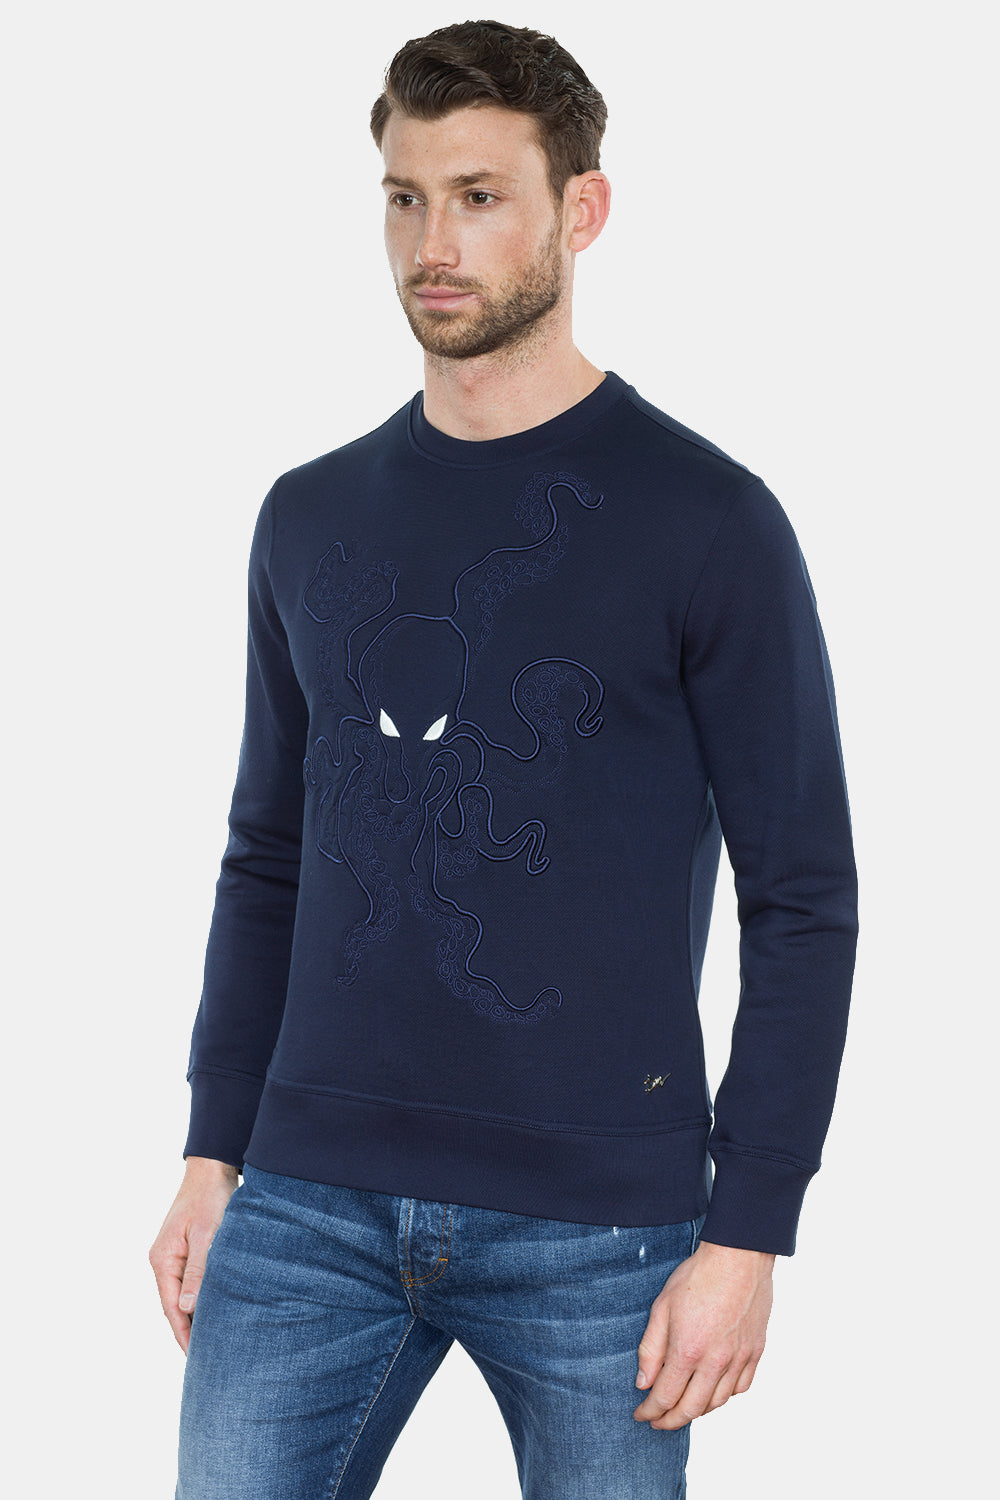 OCTUPUS EMBROIDERY SWEATSHIRT - DIMORAL OFFICIAL